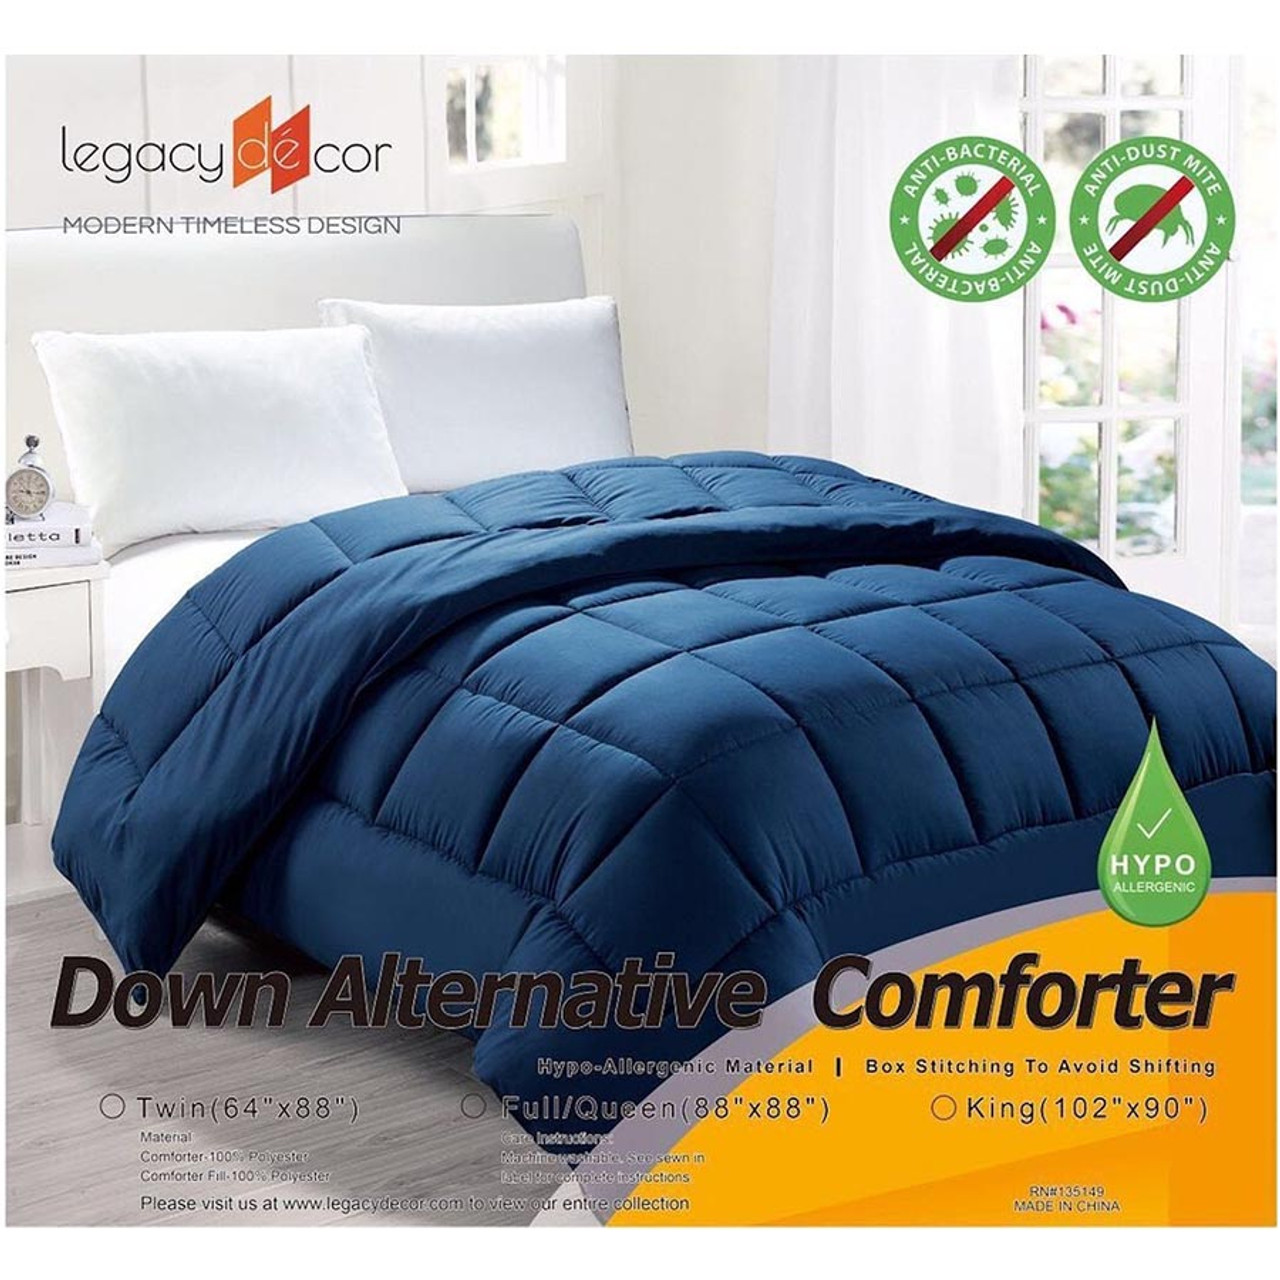 Hypoallergenic Down Alternative Comforter Navy Color